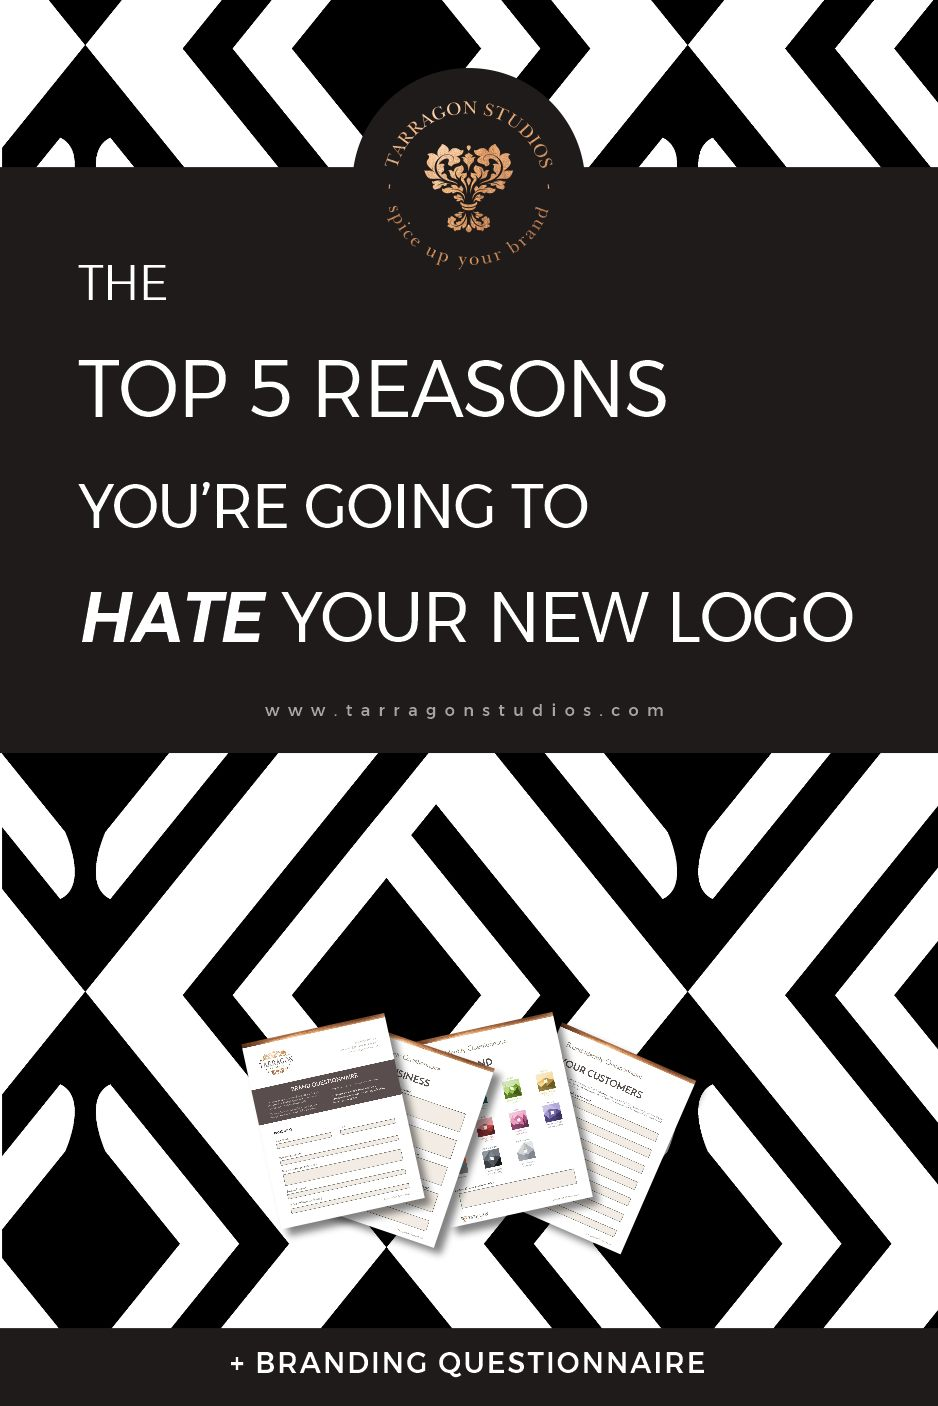 So, you've come up with a stellar business plan and the perfect company name, the next item on your list is to get that logo and you'll be in business! However, don't let excitement lead you to rush the design process or you'll be sure to end up with a logo your hate! Read more to find out how to avoid these top 5 logo design problems! #logo #design #branding #business #smallbusiness